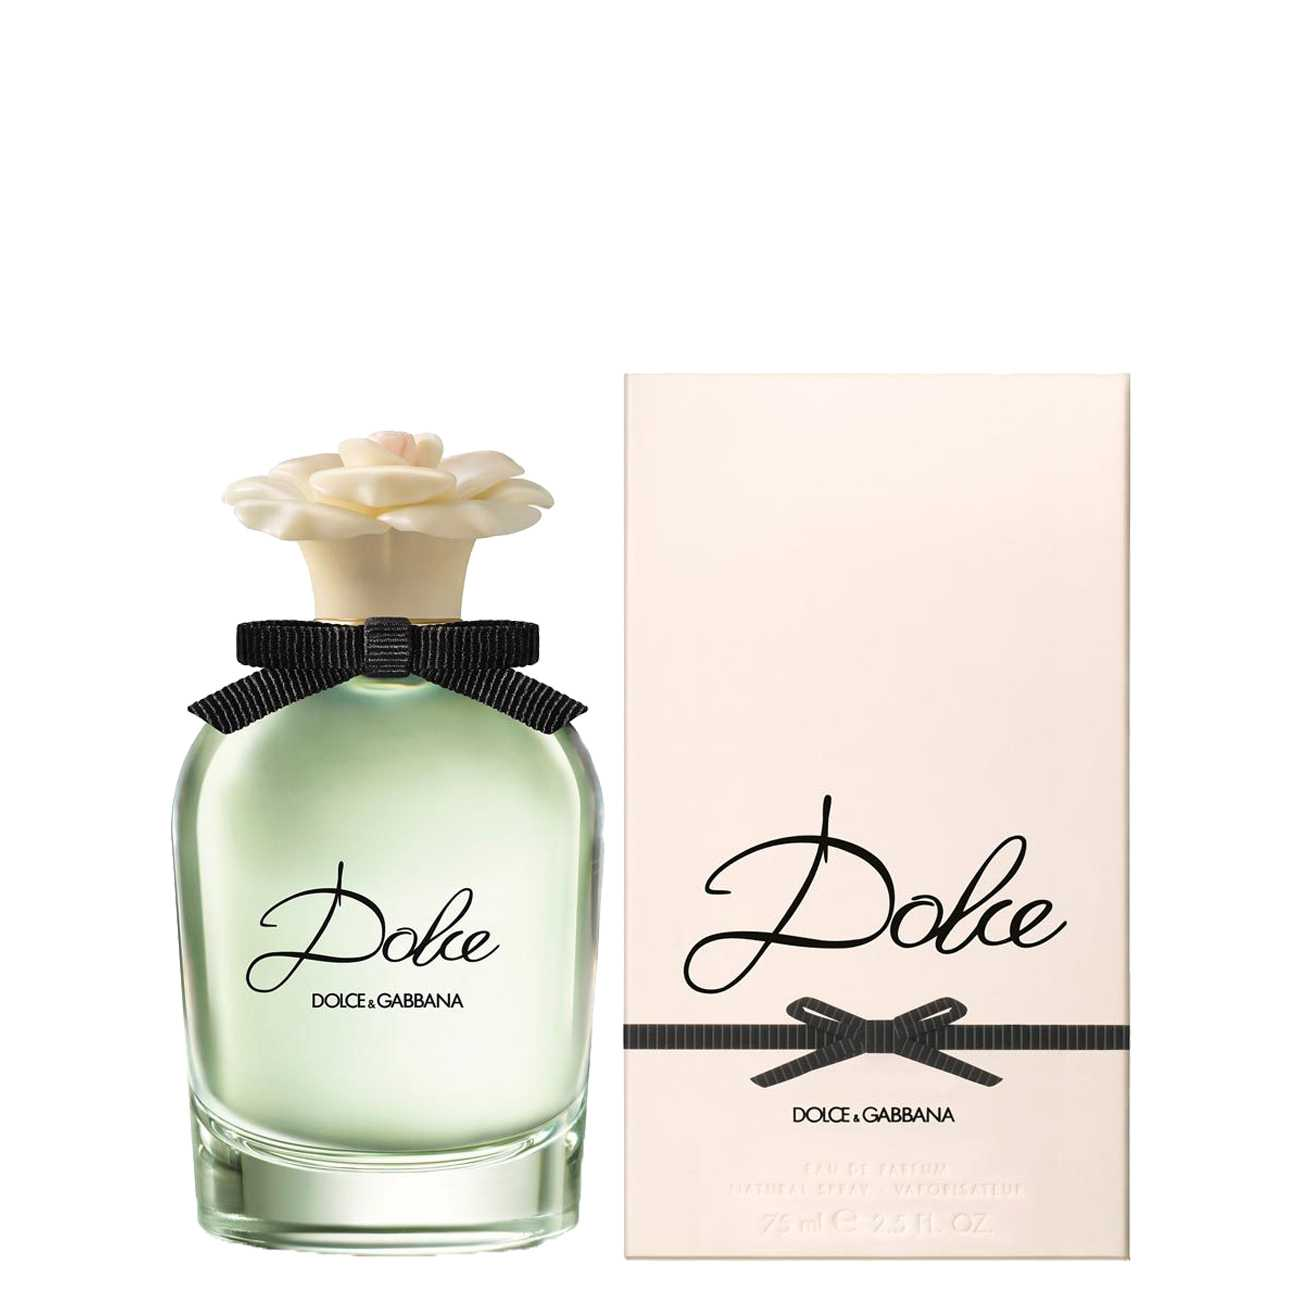 DOLCE 75ml